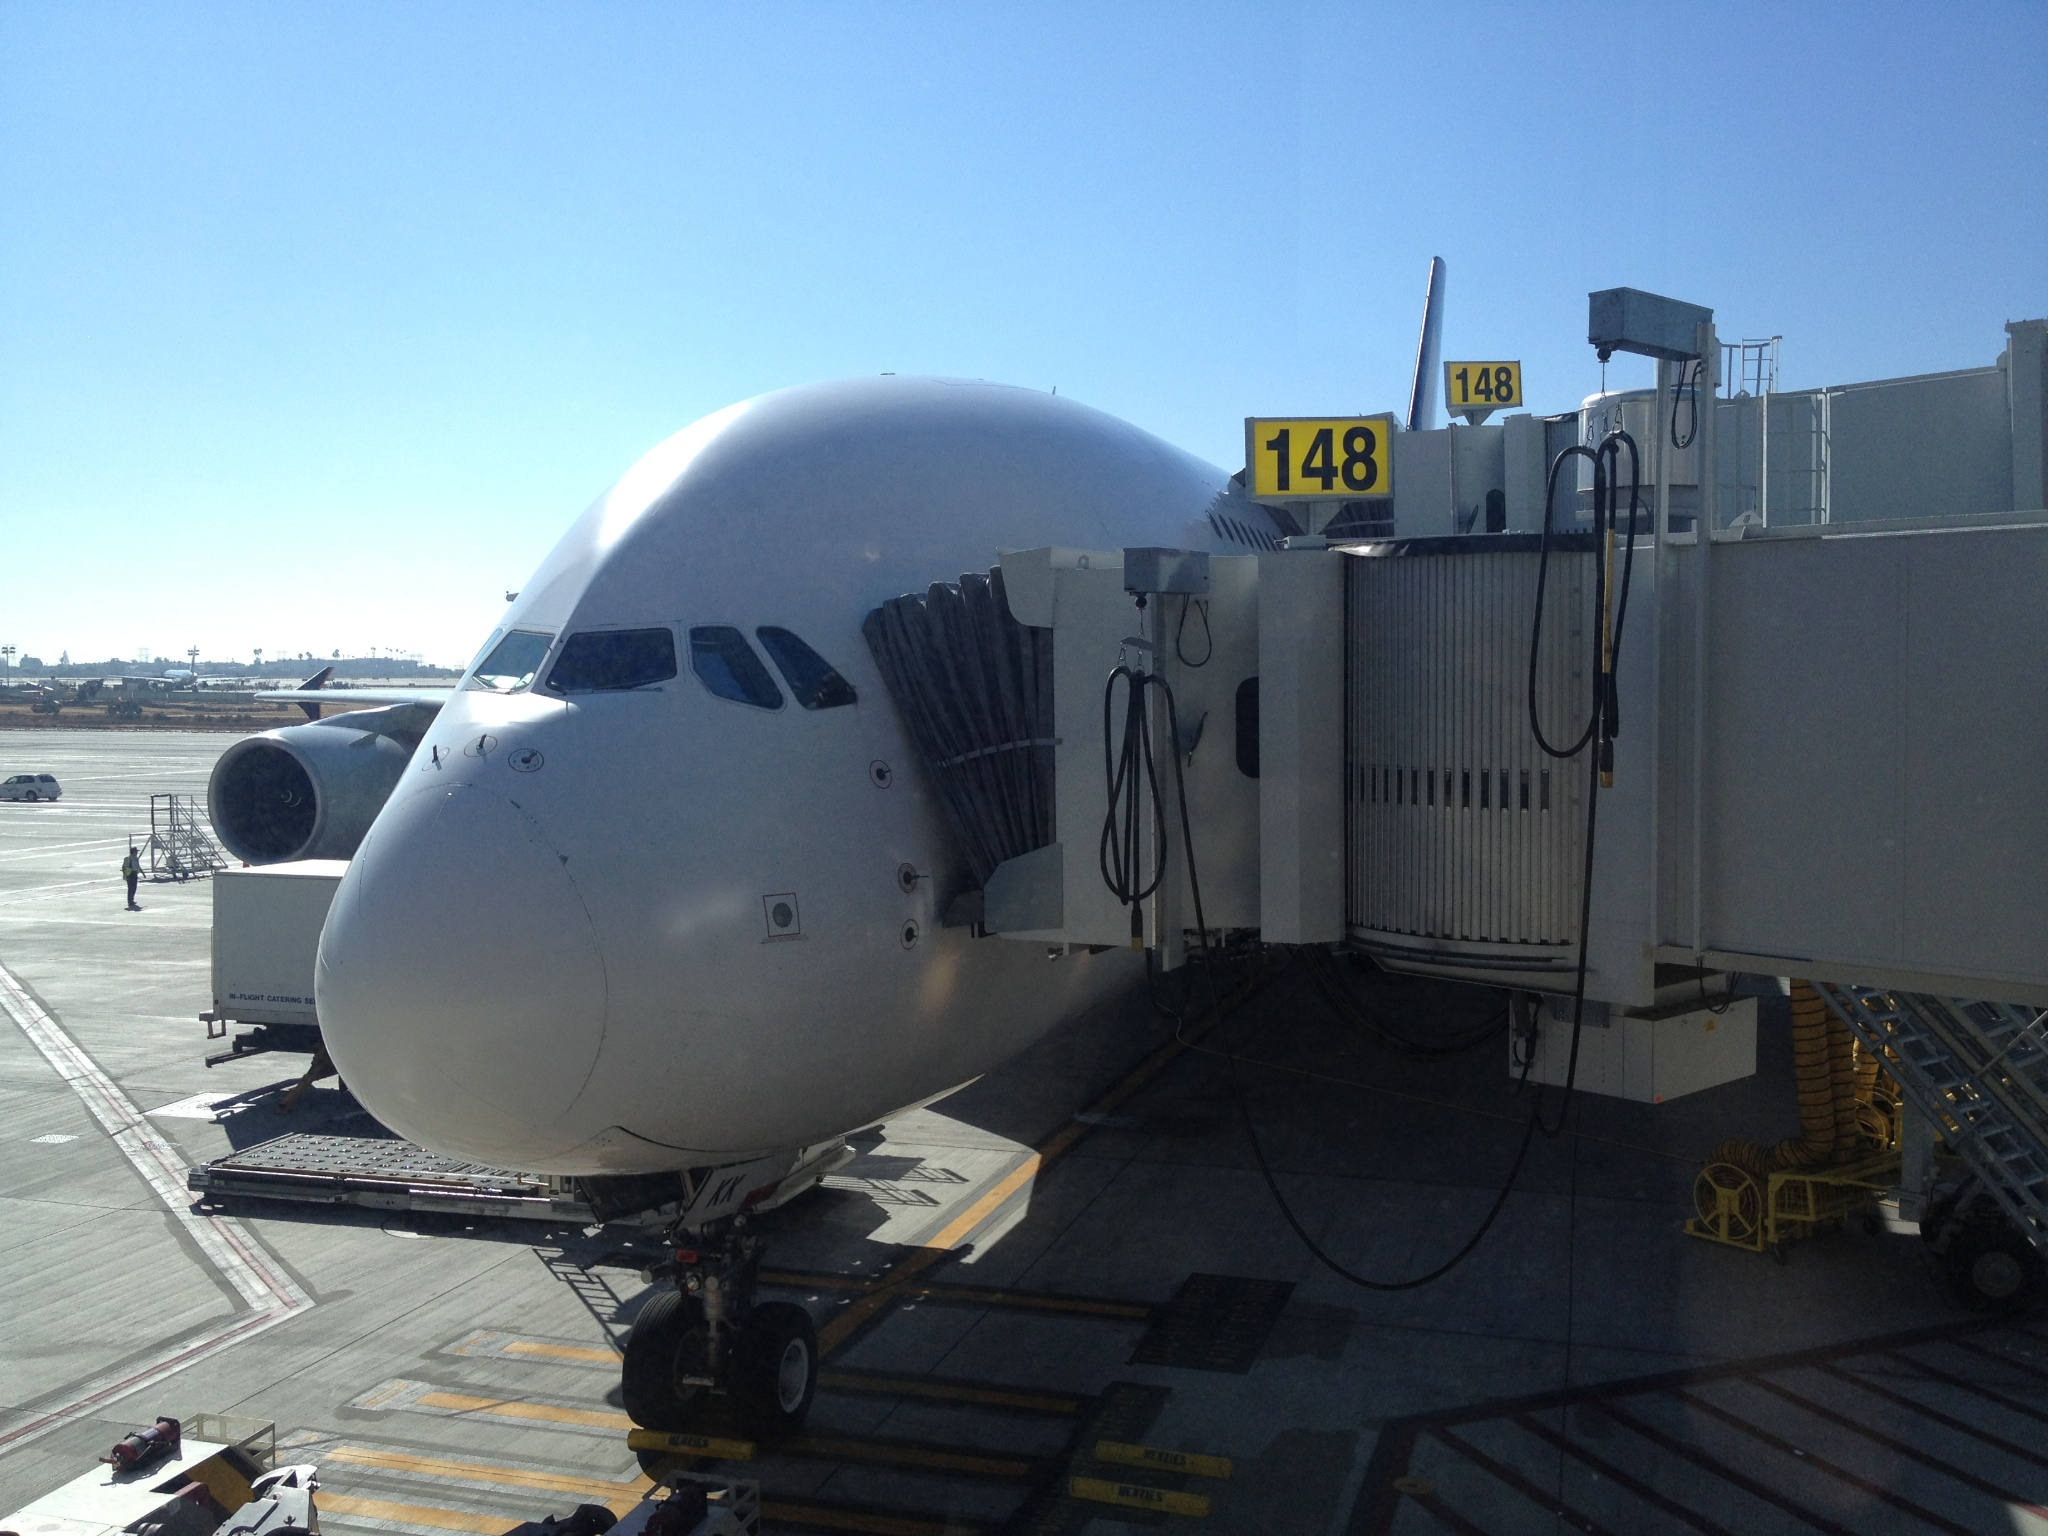 The first real leg of my trip was from LA to Tokyo, and was on a Airbus A380. I had booked a good seat on the upper deck of the massive plane. Here is the plane from the gate, in LA.